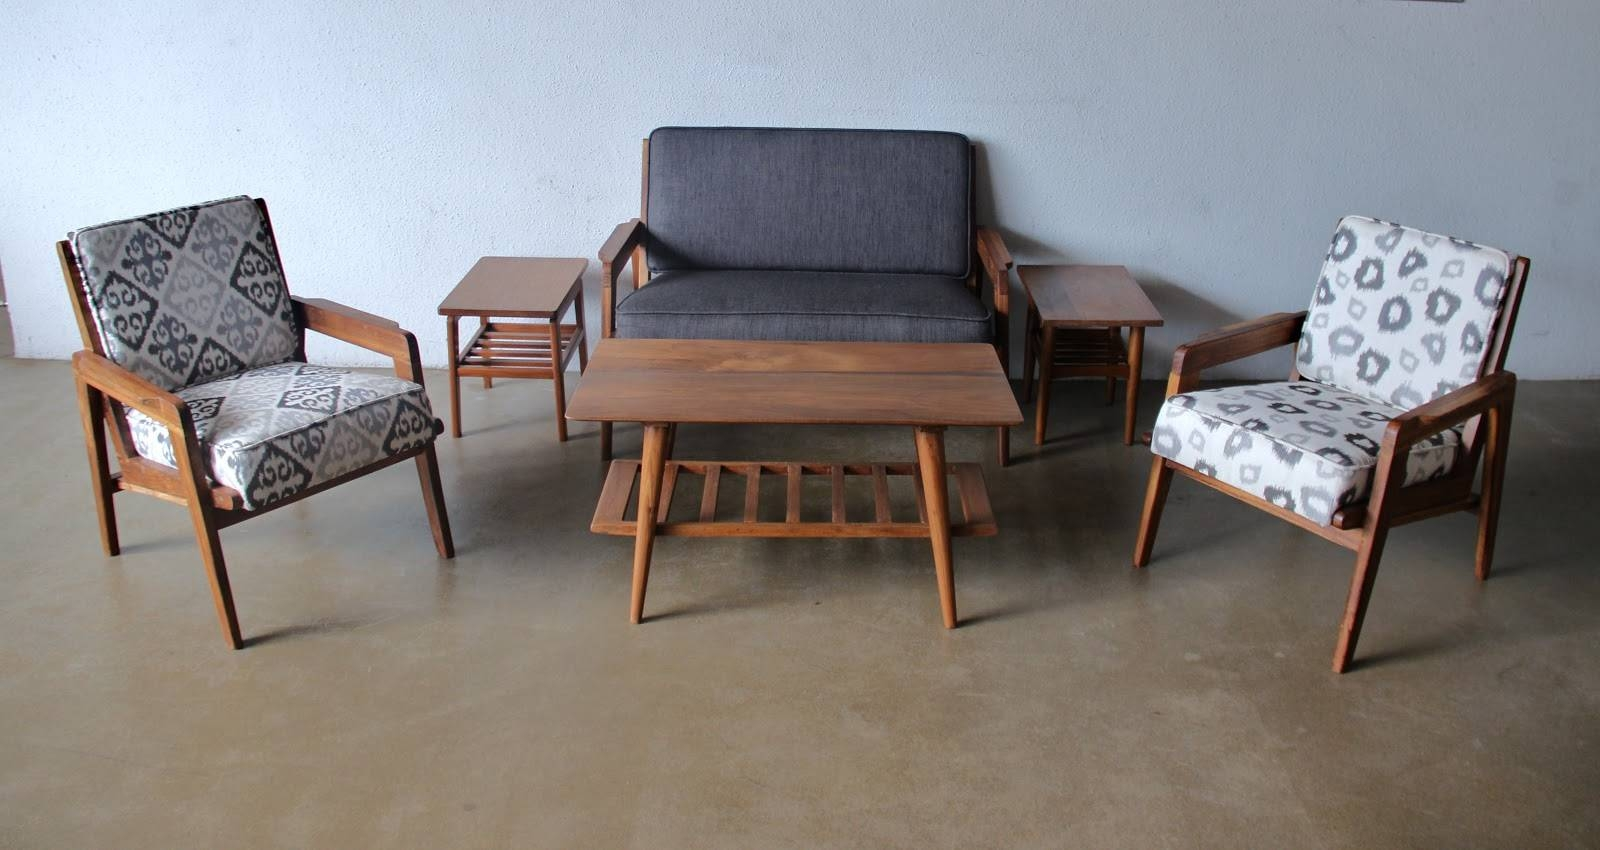 Second Charm Furniture - Vintage, Midcentury Sofas And Armchairs with regard to Retro Sofas And Chairs (Image 14 of 15)